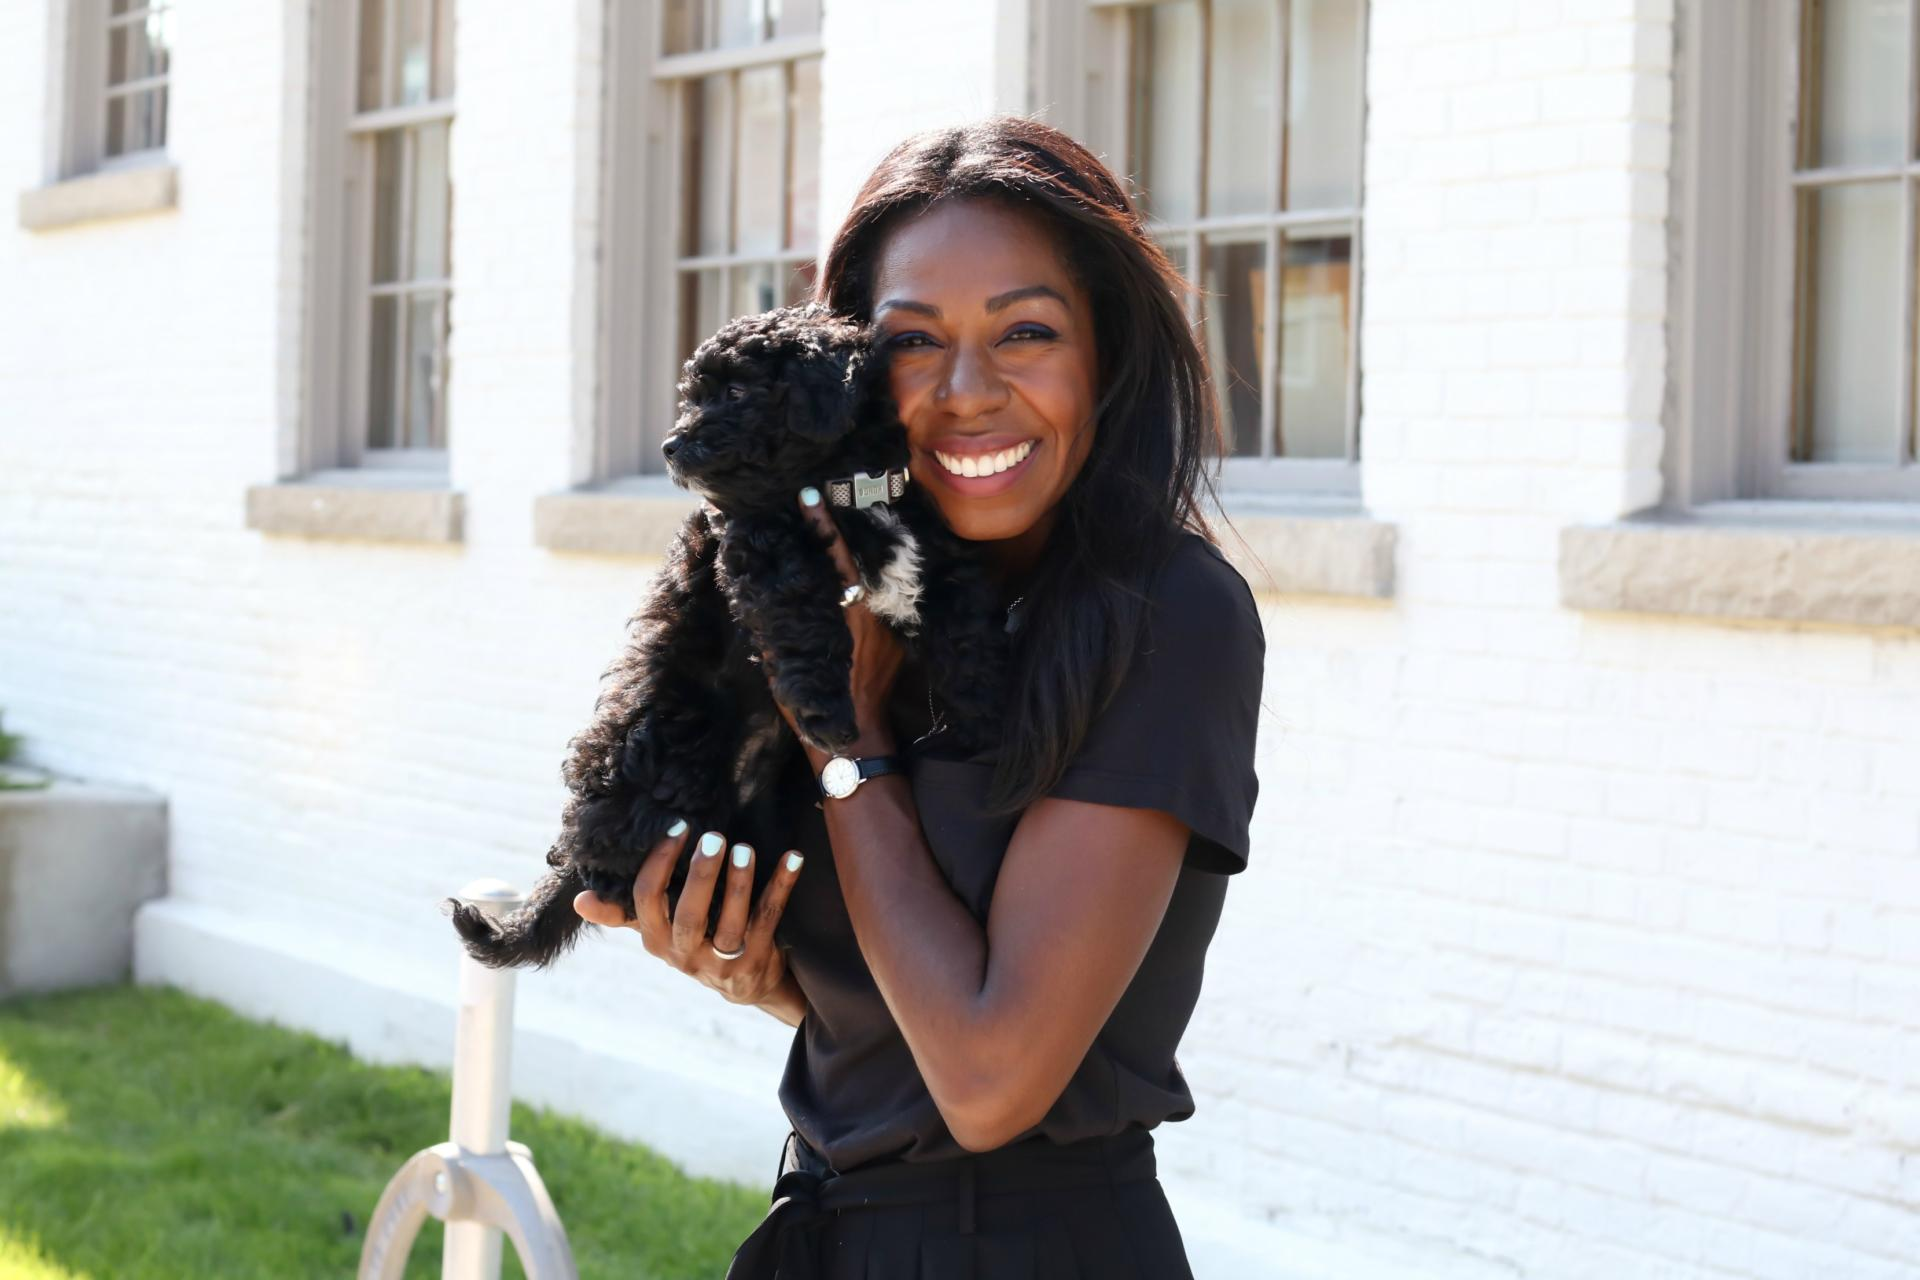 How do you de-stress? I cuddle puppies and perk up with Teonella Jewellery!